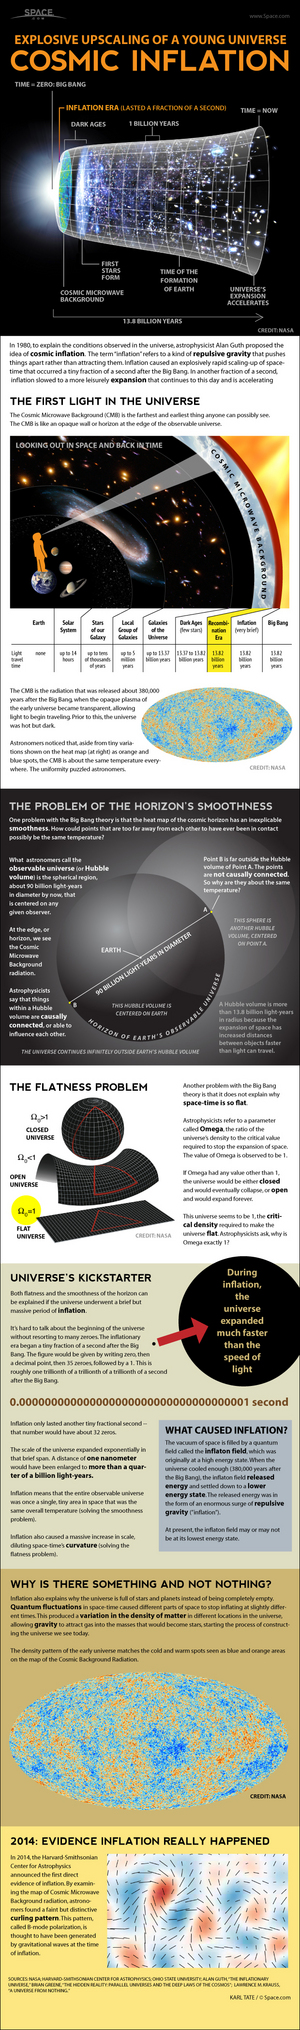 "Inflation is the mysterious force that blew up the scale of the infant universe from sub-microscopic to gargantuan in a fraction of a second. <a href=""http://www.space.com/25075-cosmic-inflation-universe-expansion-big-bang-infographic.html"">See how cosmic inflation theory for the Big Bang and universe's expansion works in this Space.com infographic</a>."